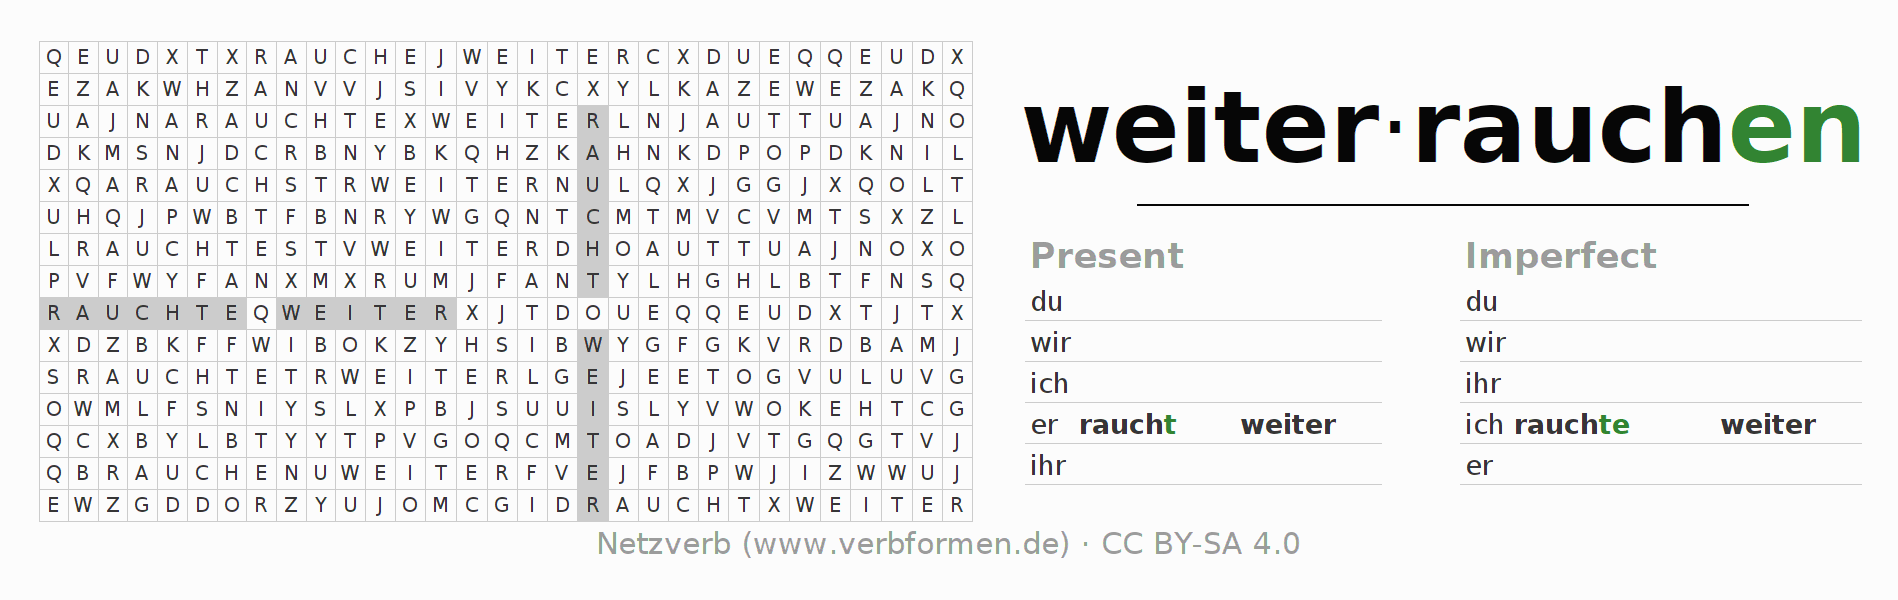 Word search puzzle for the conjugation of the verb weiterrauchen